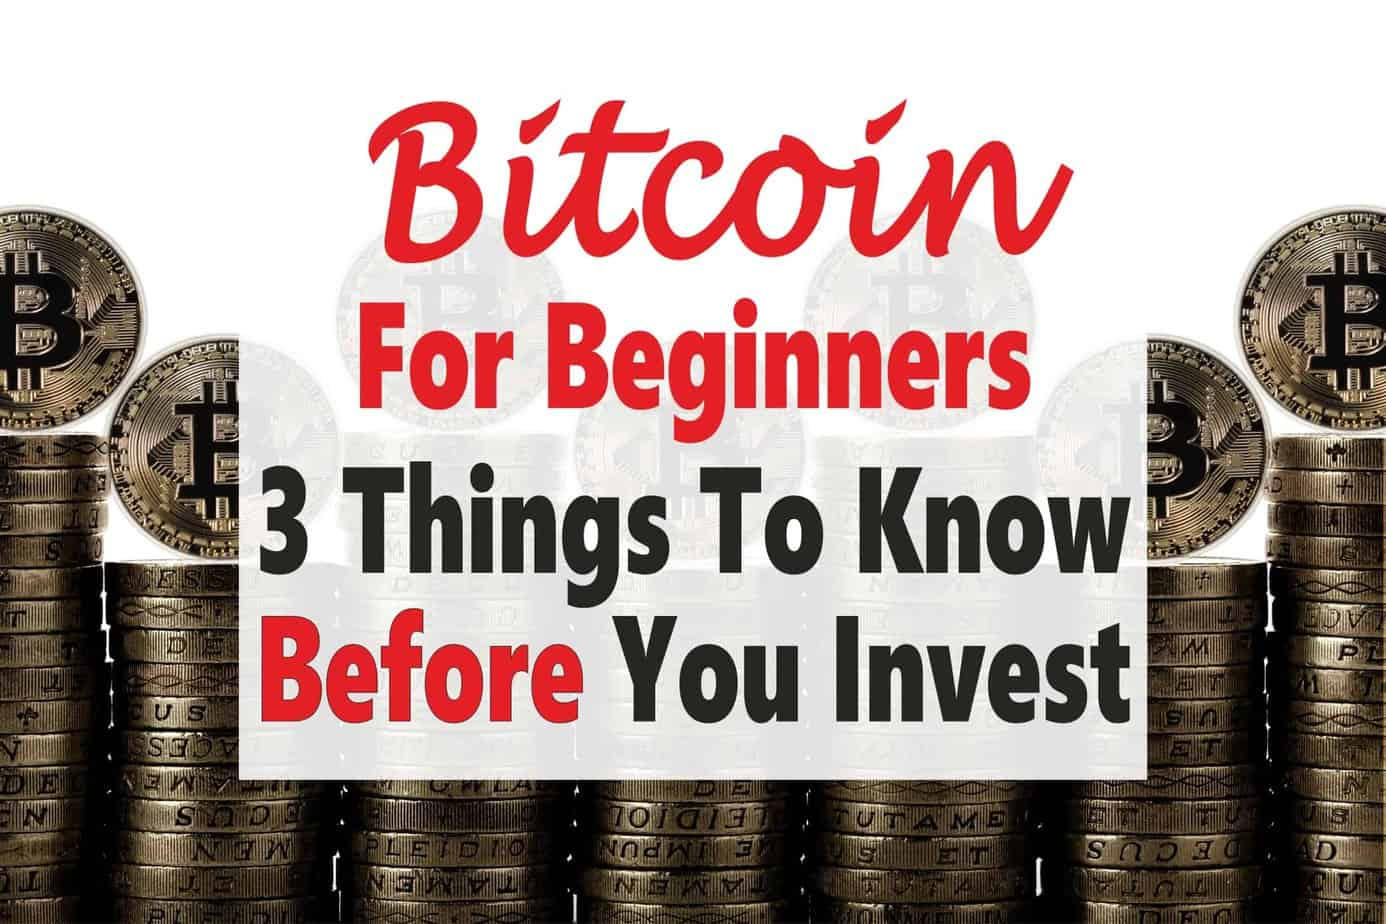 BITCOIN FOR BEGINNERS: 3 THINGS TO KNOW BEFORE YOU INVEST The Bitcoin craze has taken the world by storm. Now everyone is talking about Bitcoin but there are a few things you need to know before investing. Click over to find out what they are. bitcoin | invest | money | investing | cryptocurrency #bitcoin #invest #money